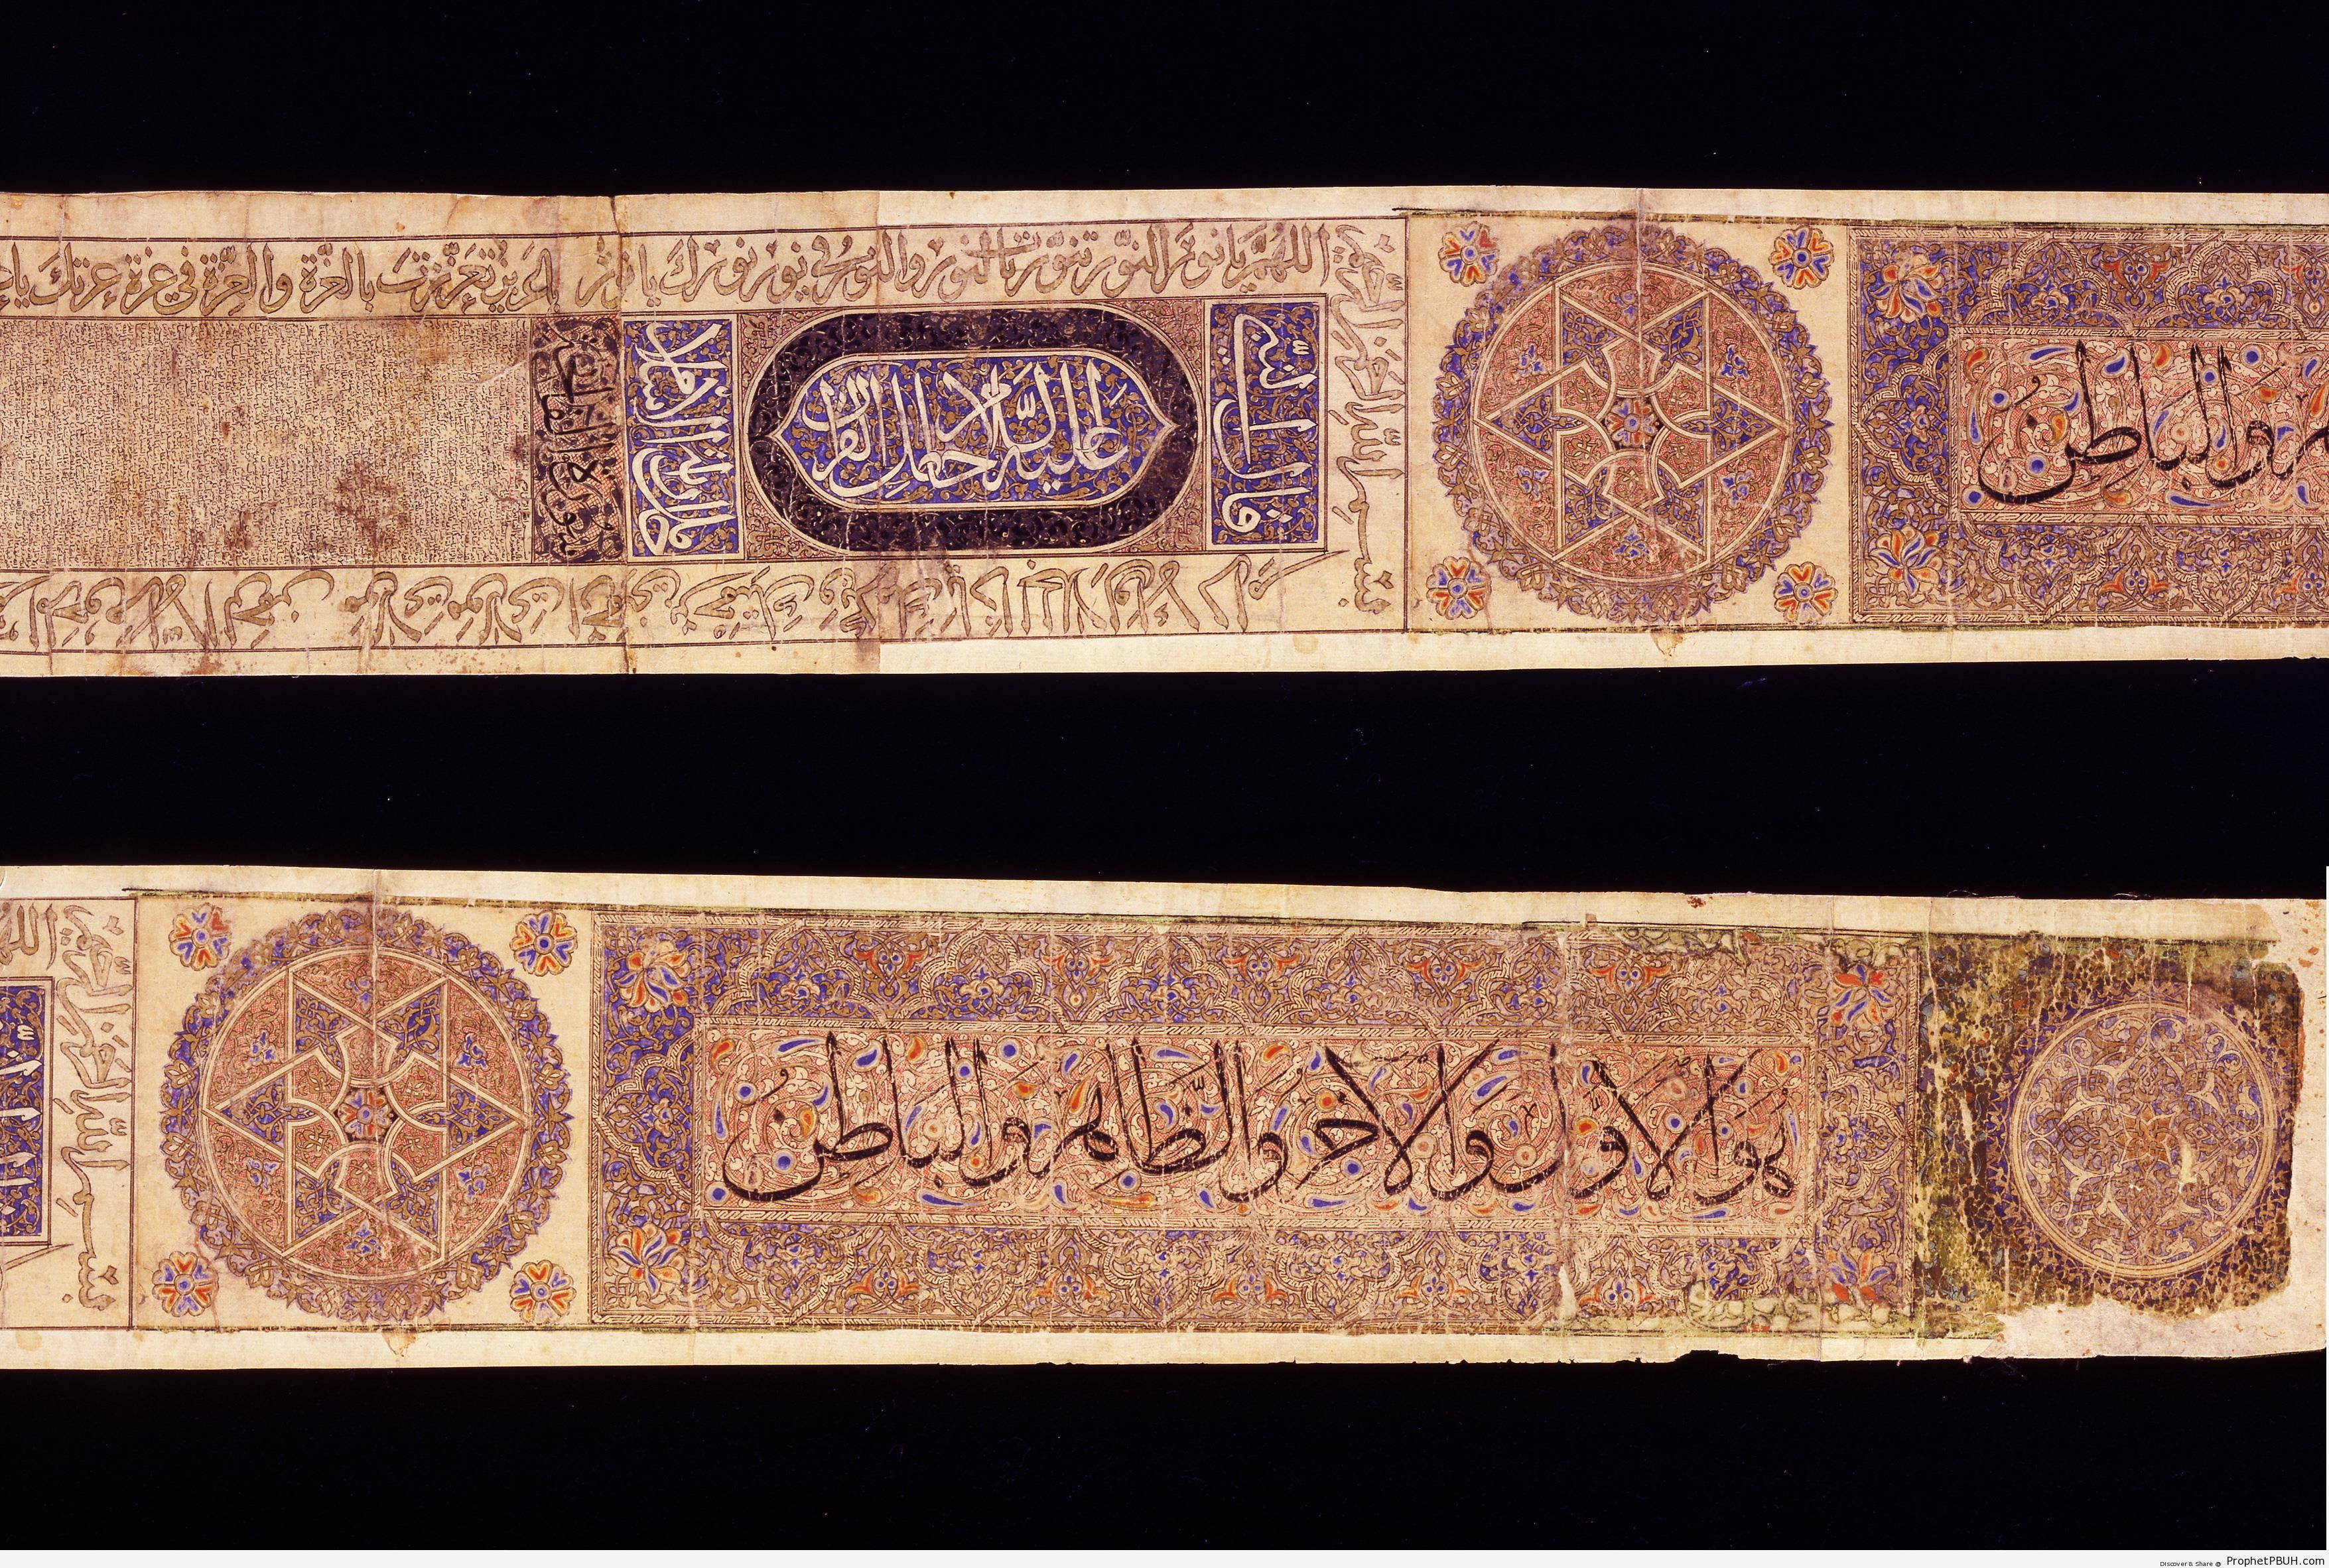 14th Century Quran Scroll - Islamic Calligraphy and Typography